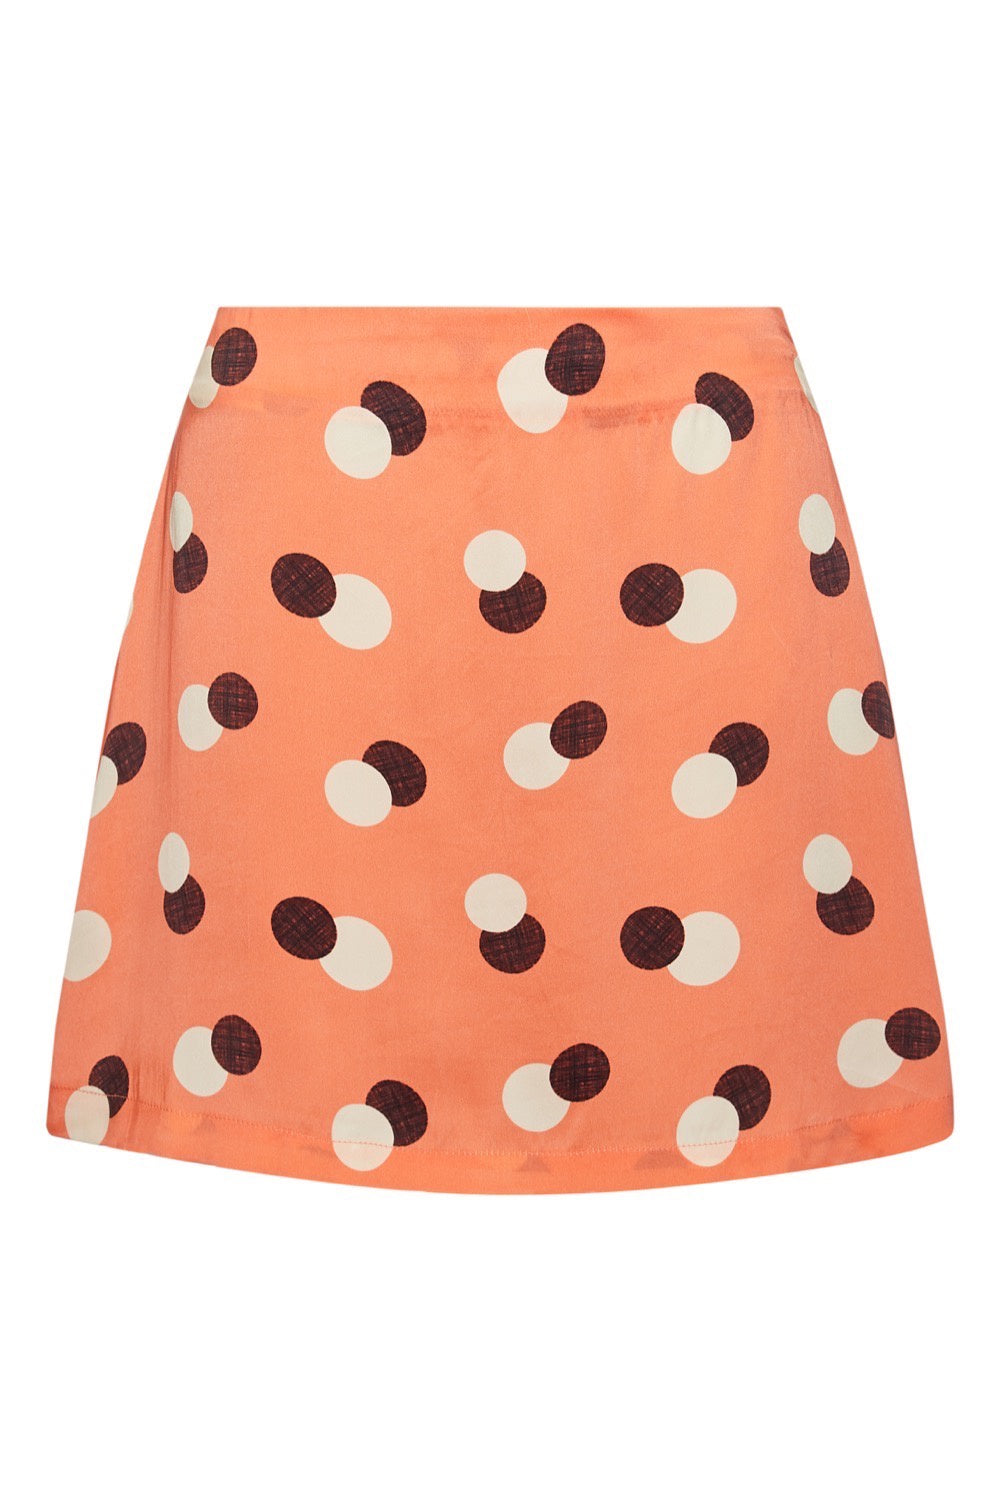 Baar and Bass - Orange Dot Silk Sienna Mini Skirt